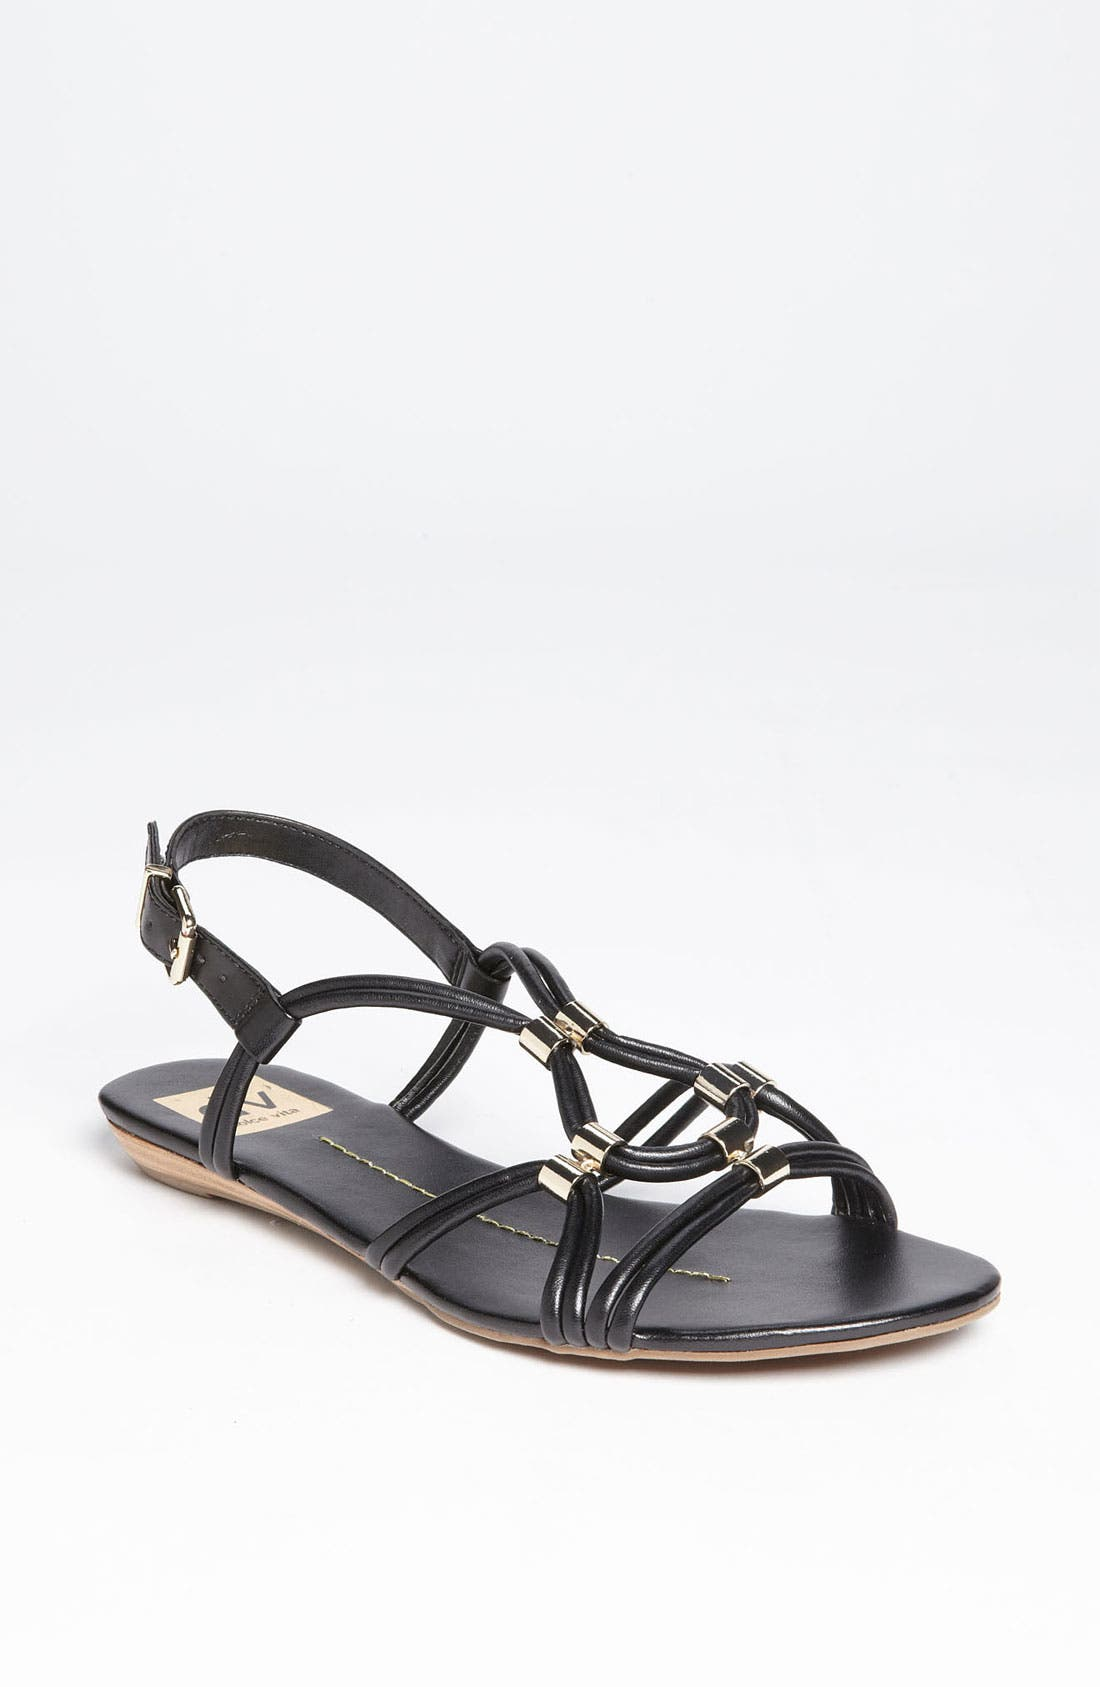 Main Image - DV by Dolce Vita 'Aneta' Sandal (Nordstrom Exclusive)